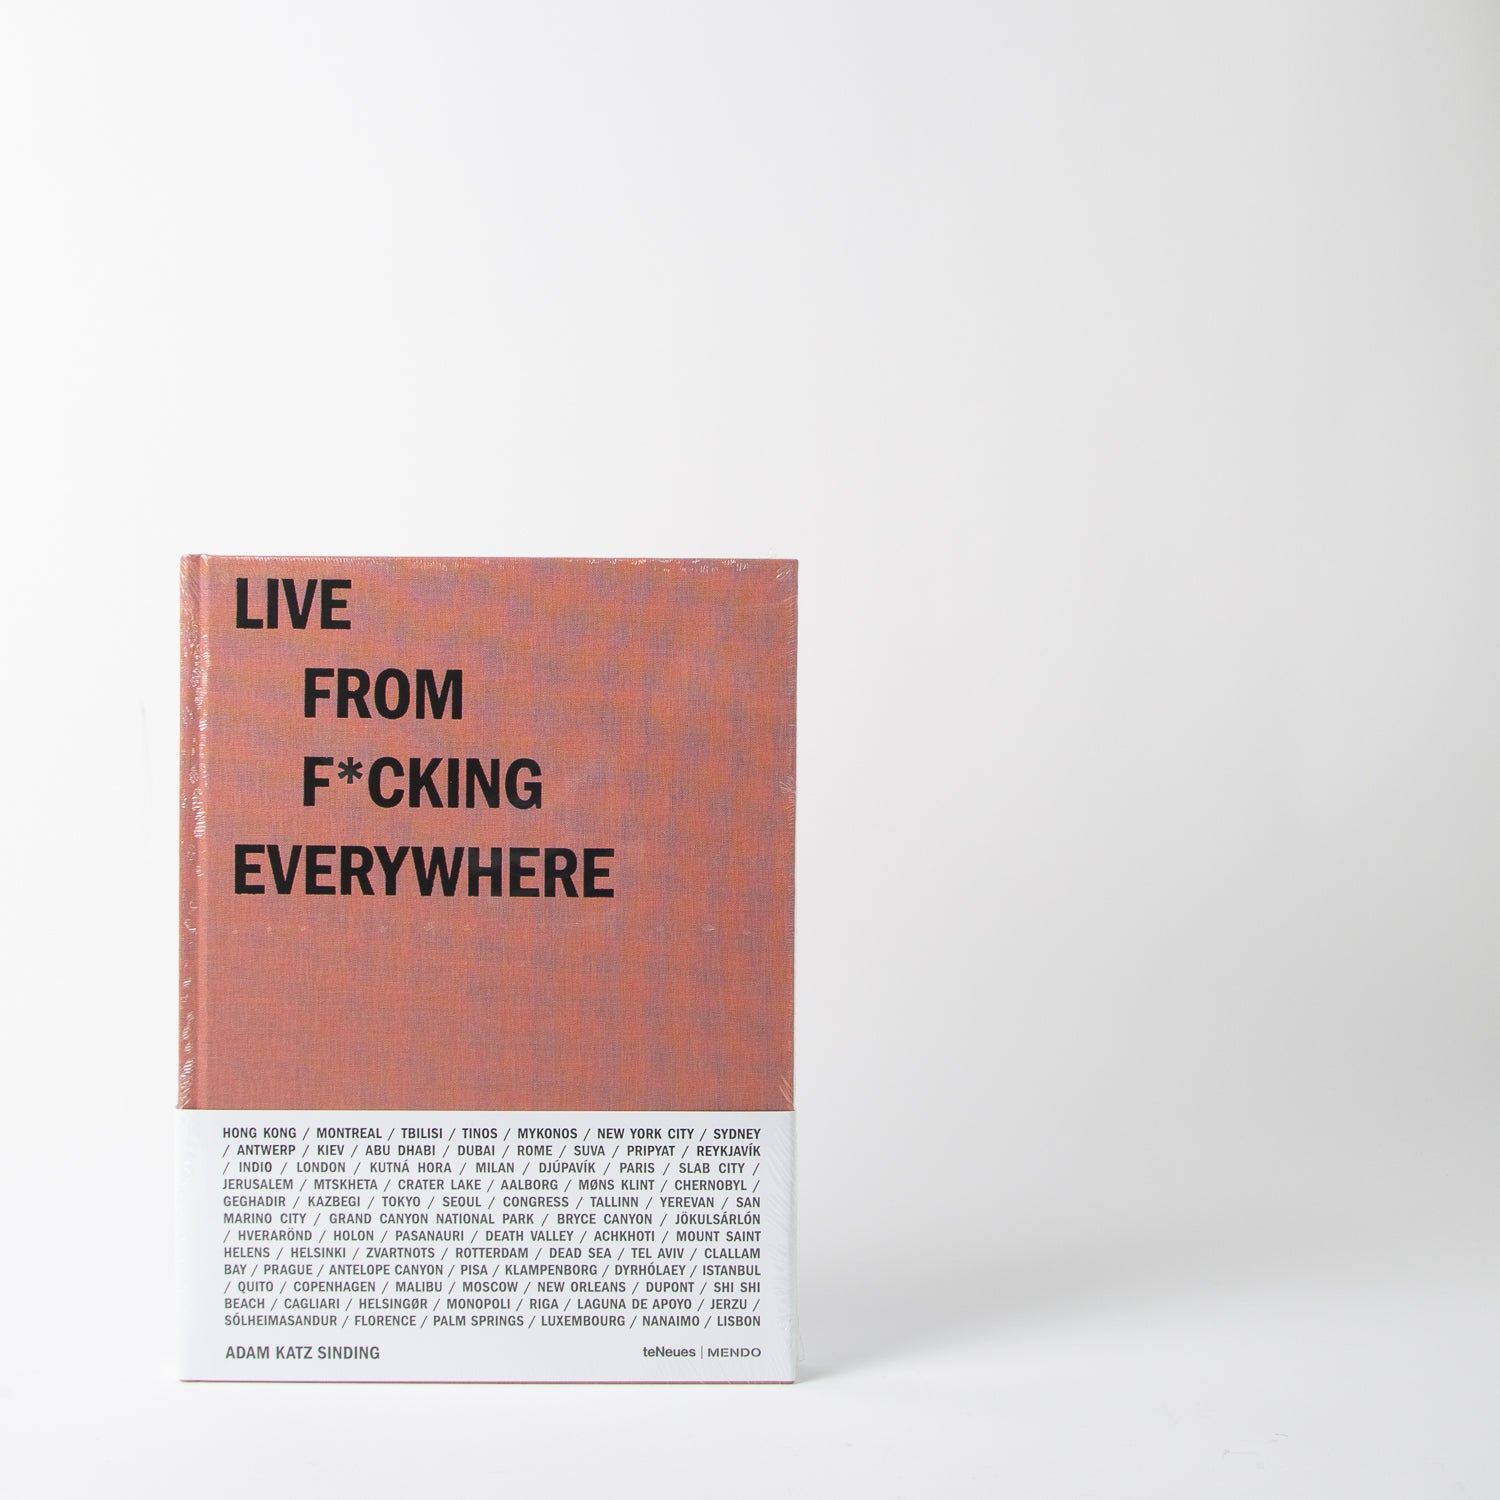 Live from fucking everywhere book by Mendo at Secret Location Concept Store